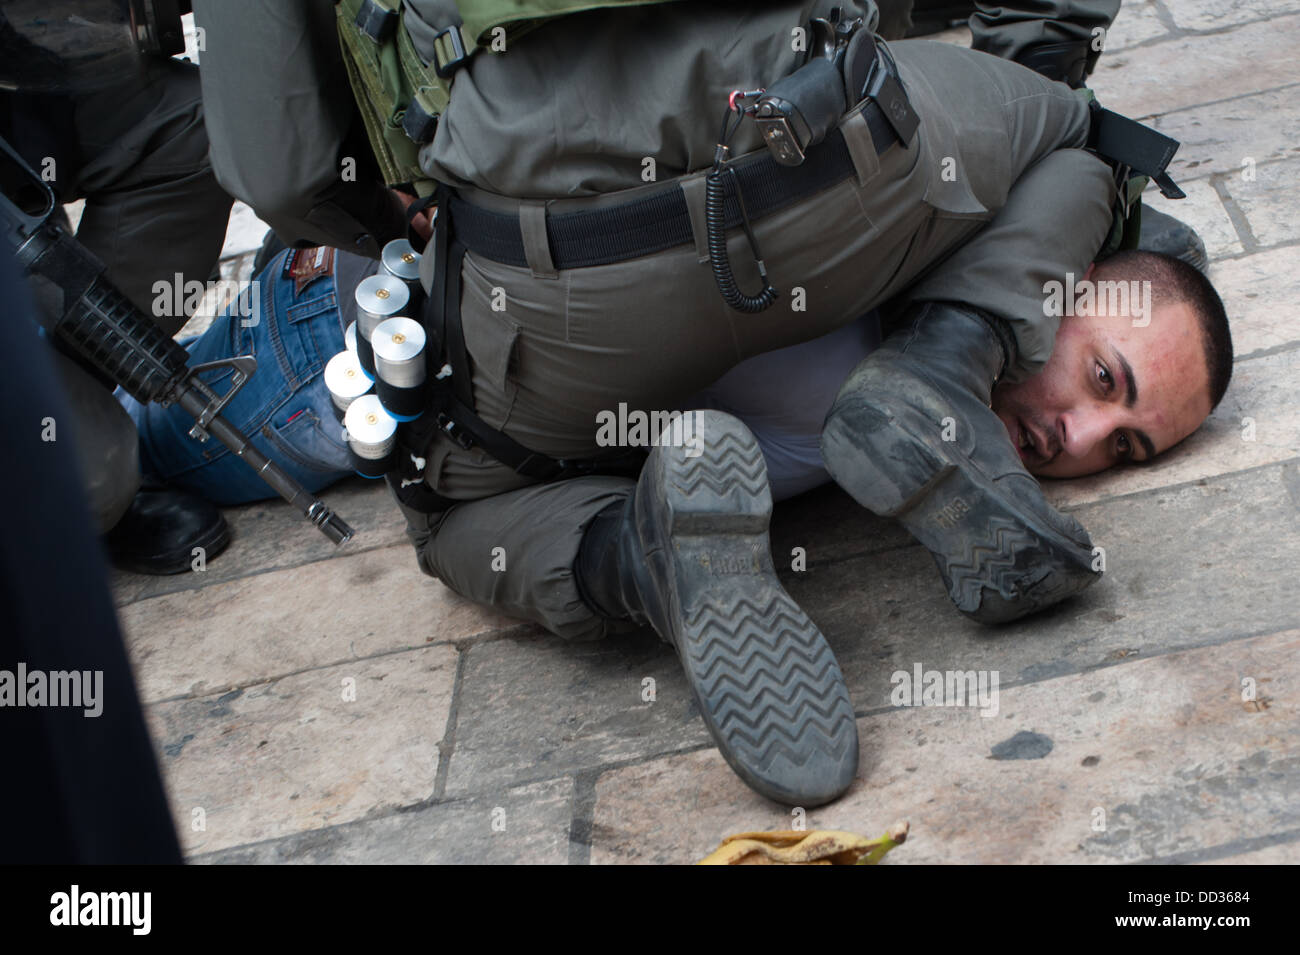 Israeli police arrest a Palestinian man during clashes with Palestinians commemorating Nakba Day at Damascus Gate. - Stock Image